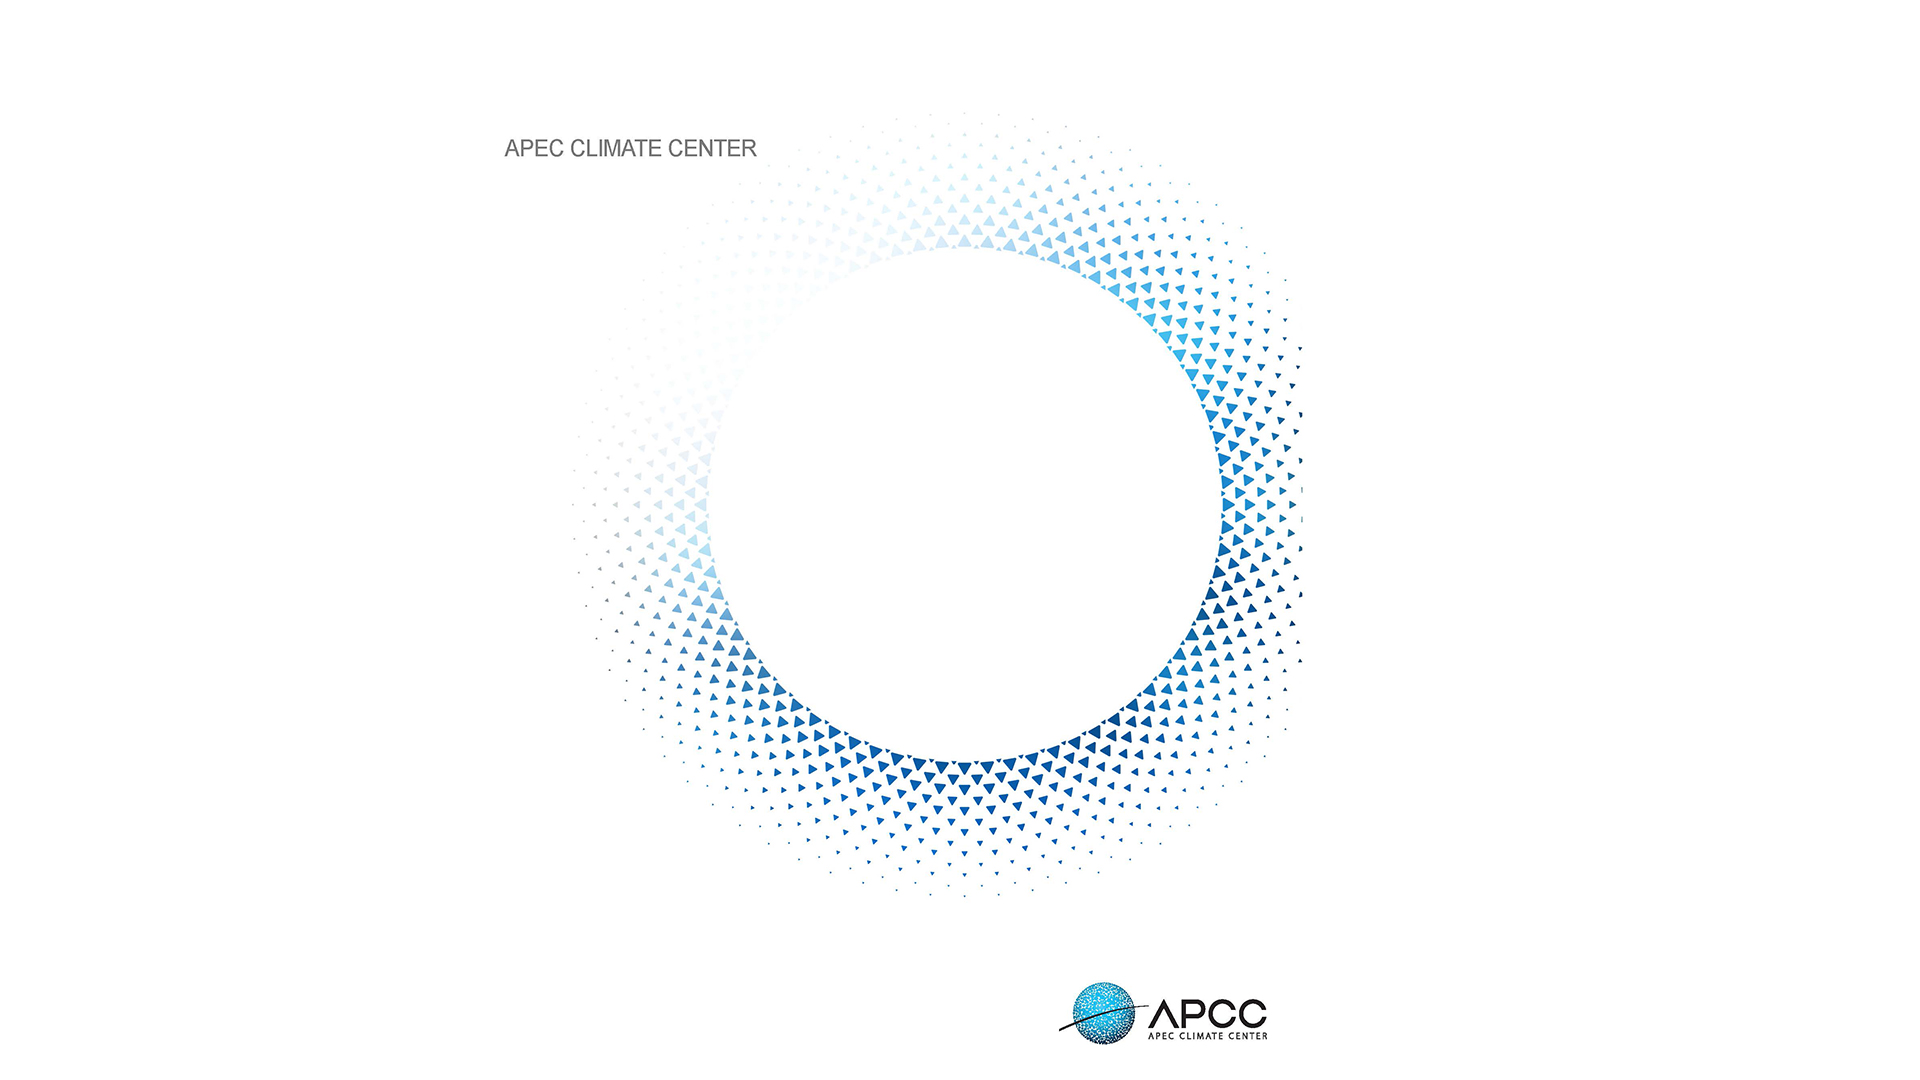 Publication of the 2014 APCC Research Report